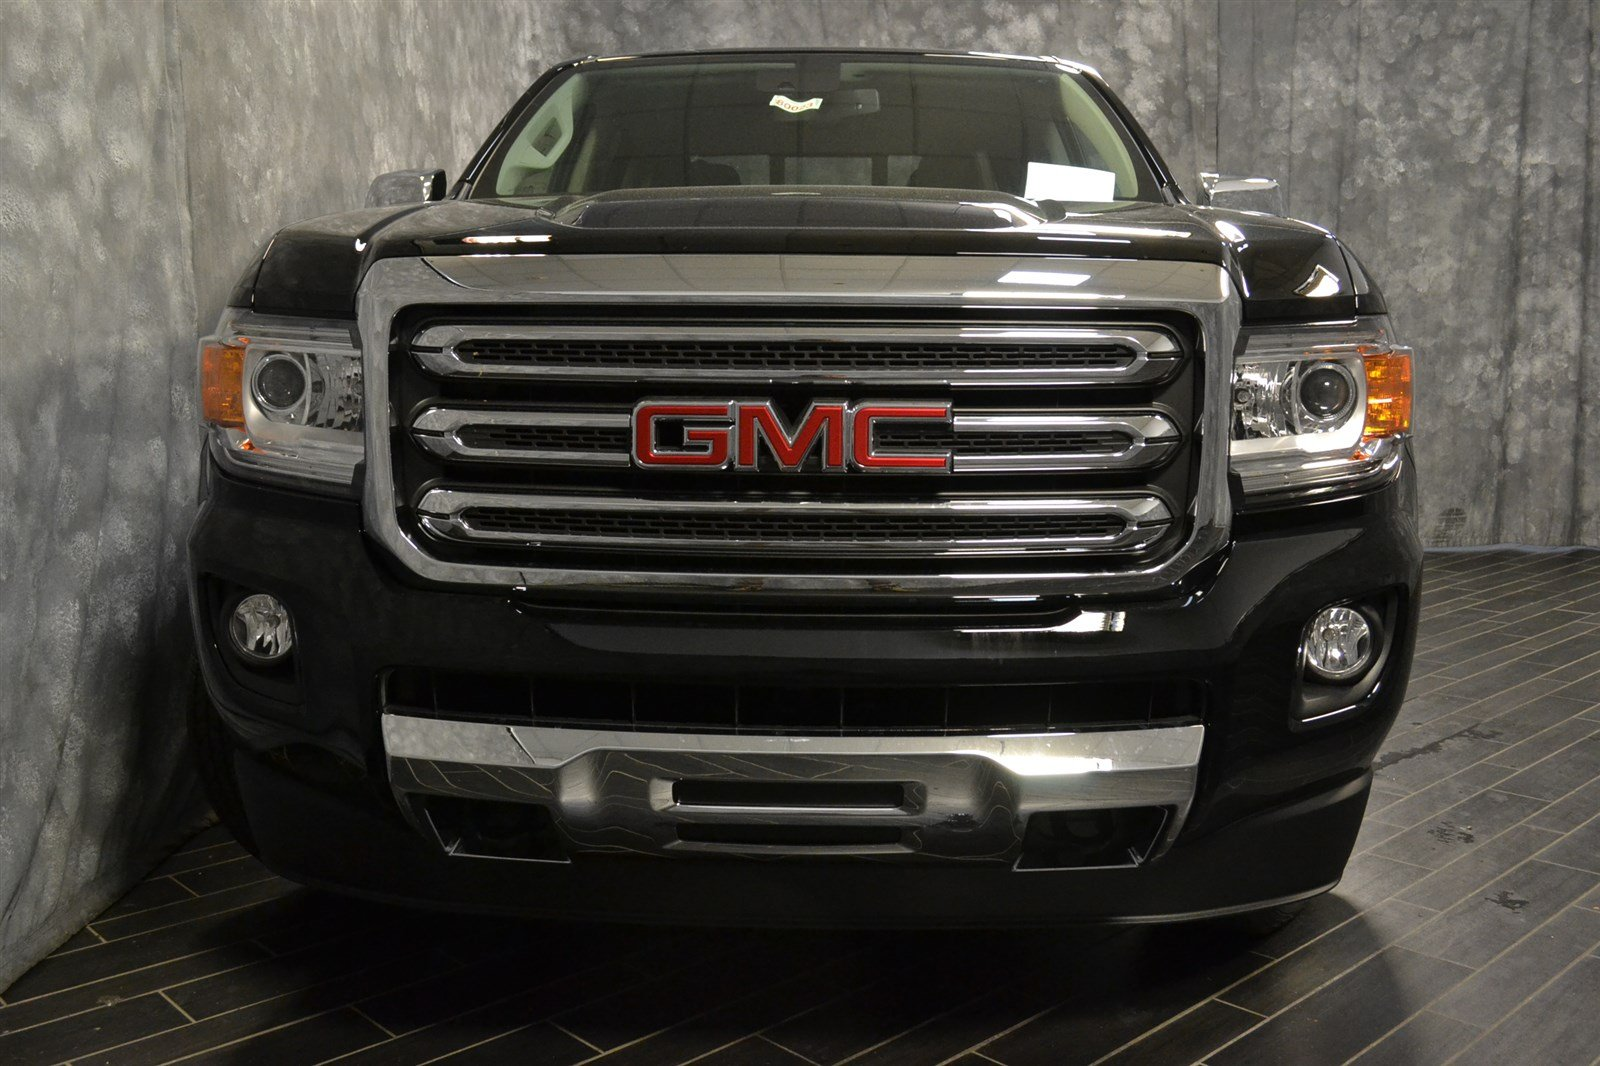 New 2018 GMC Canyon SLT Crew Cab Pickup in North Riverside  80023     New 2018 GMC Canyon SLT